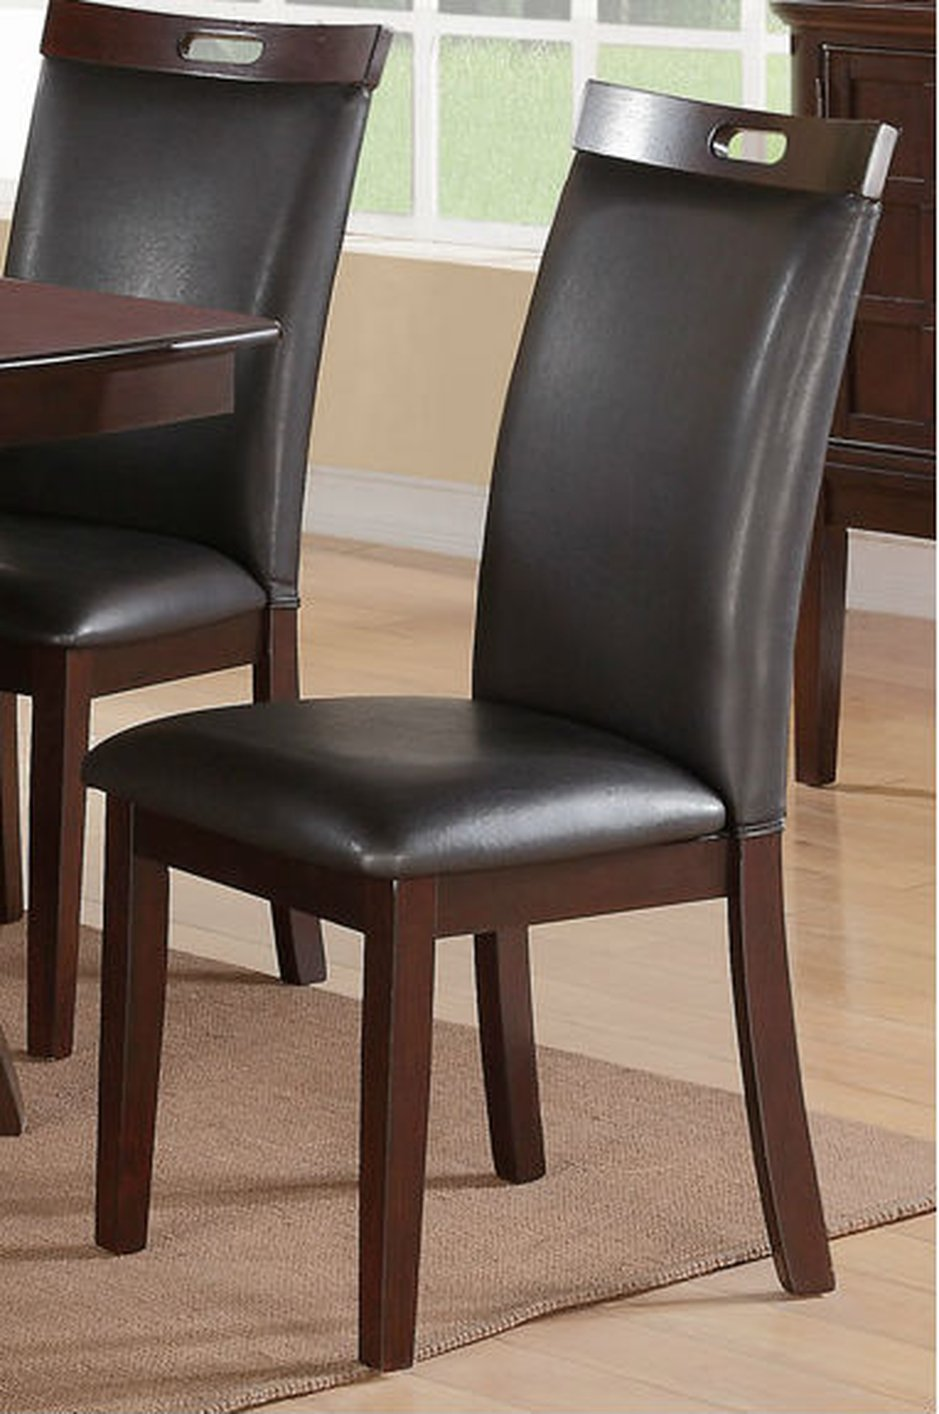 Brown Wood Dining Chair Steal A Sofa Furniture Outlet